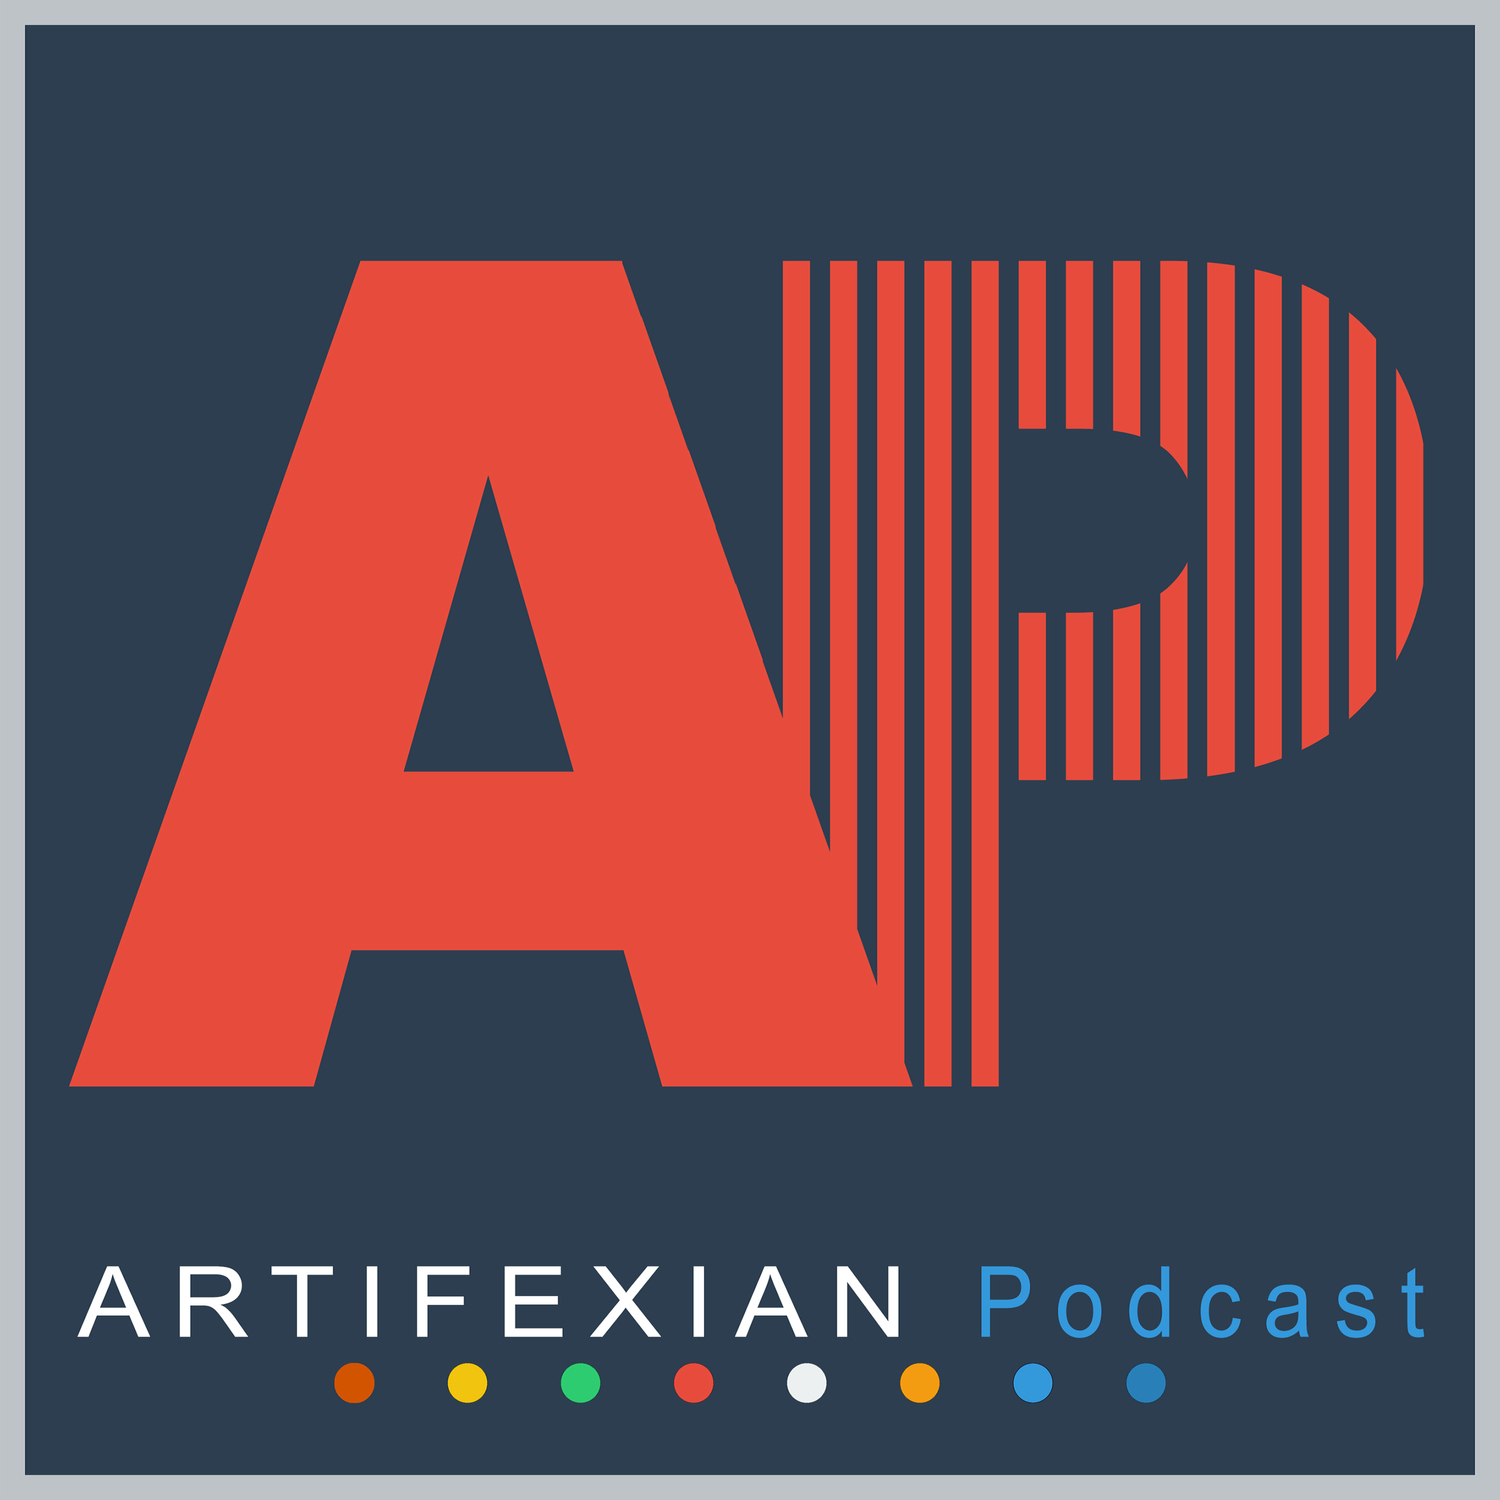 The Artifexian Podcast